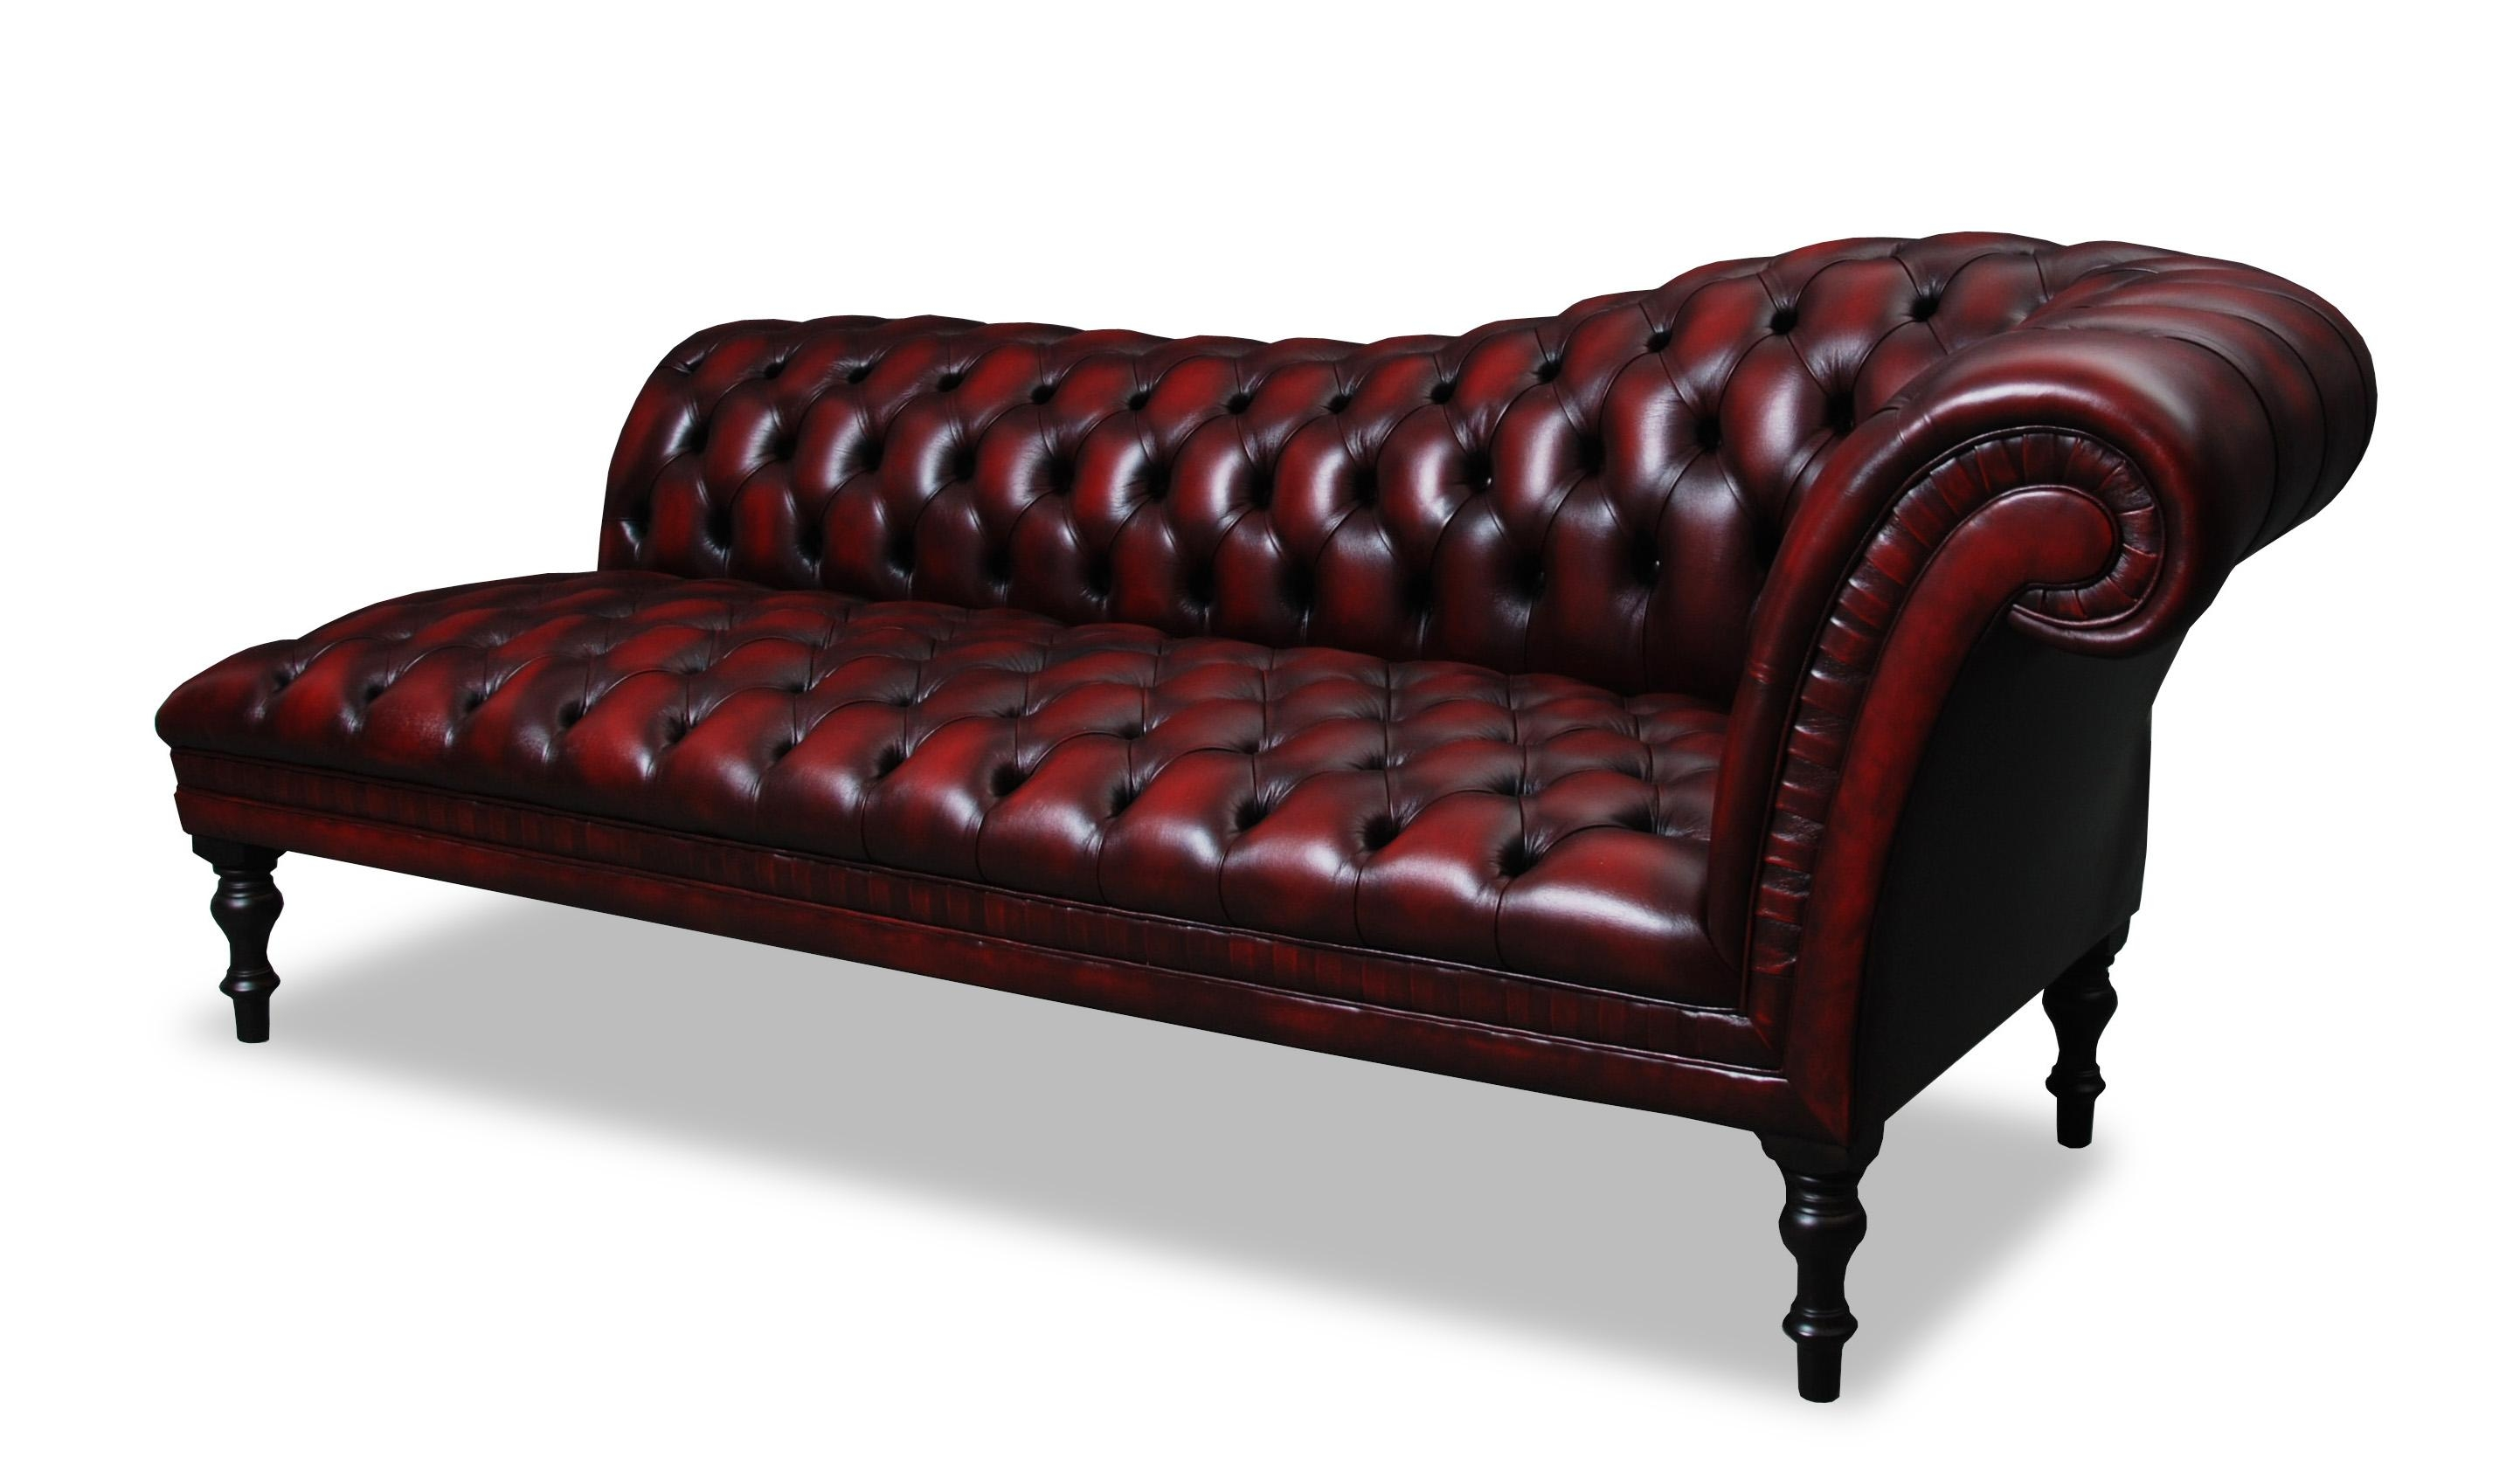 Storage Chesterfield Chaise Lounge Upholstered In Antique Oxblood Within Red Chesterfield Sofas (View 18 of 20)